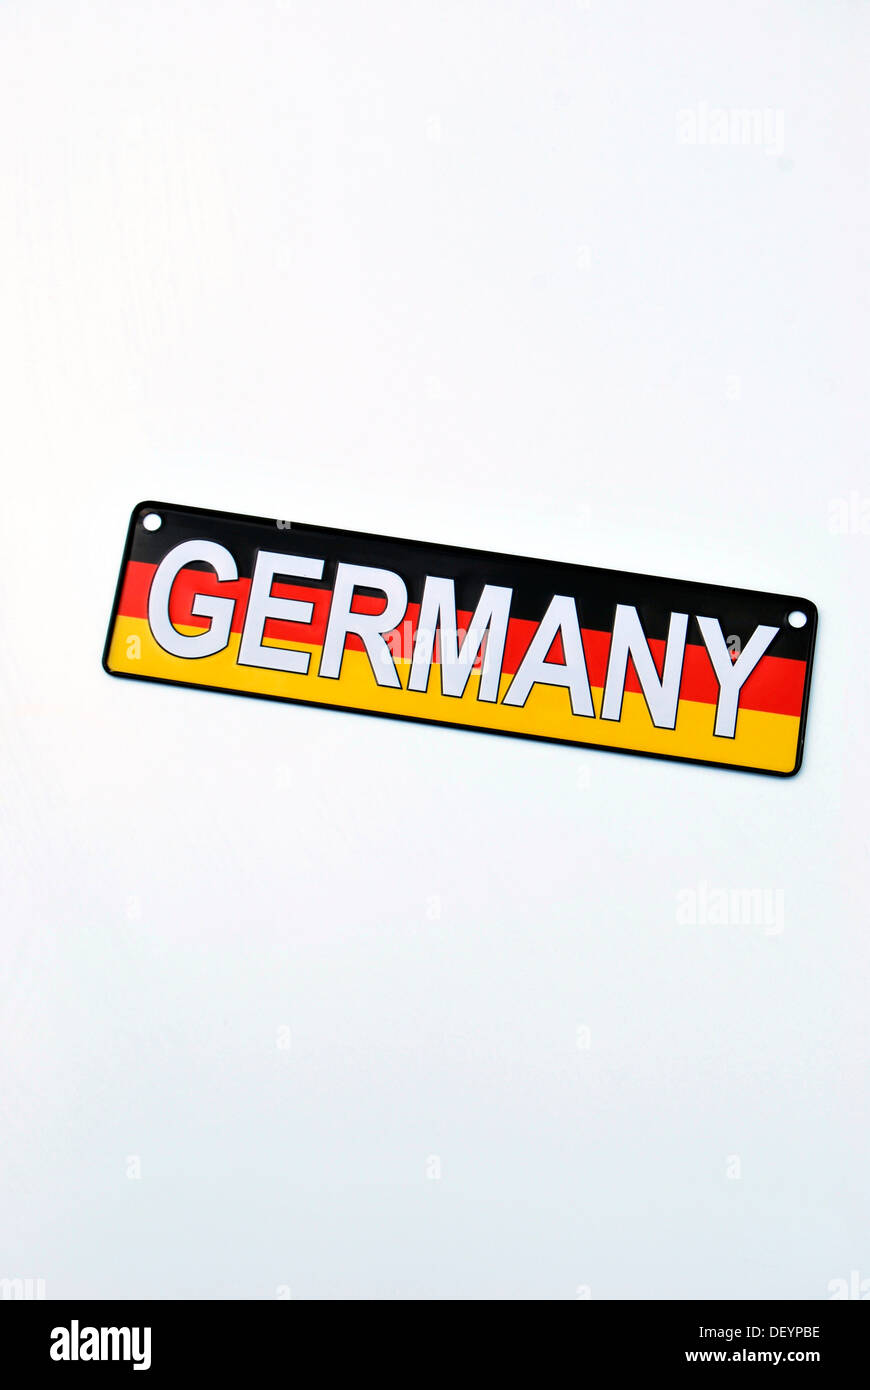 license plate of germany stockfotos license plate of germany bilder alamy. Black Bedroom Furniture Sets. Home Design Ideas